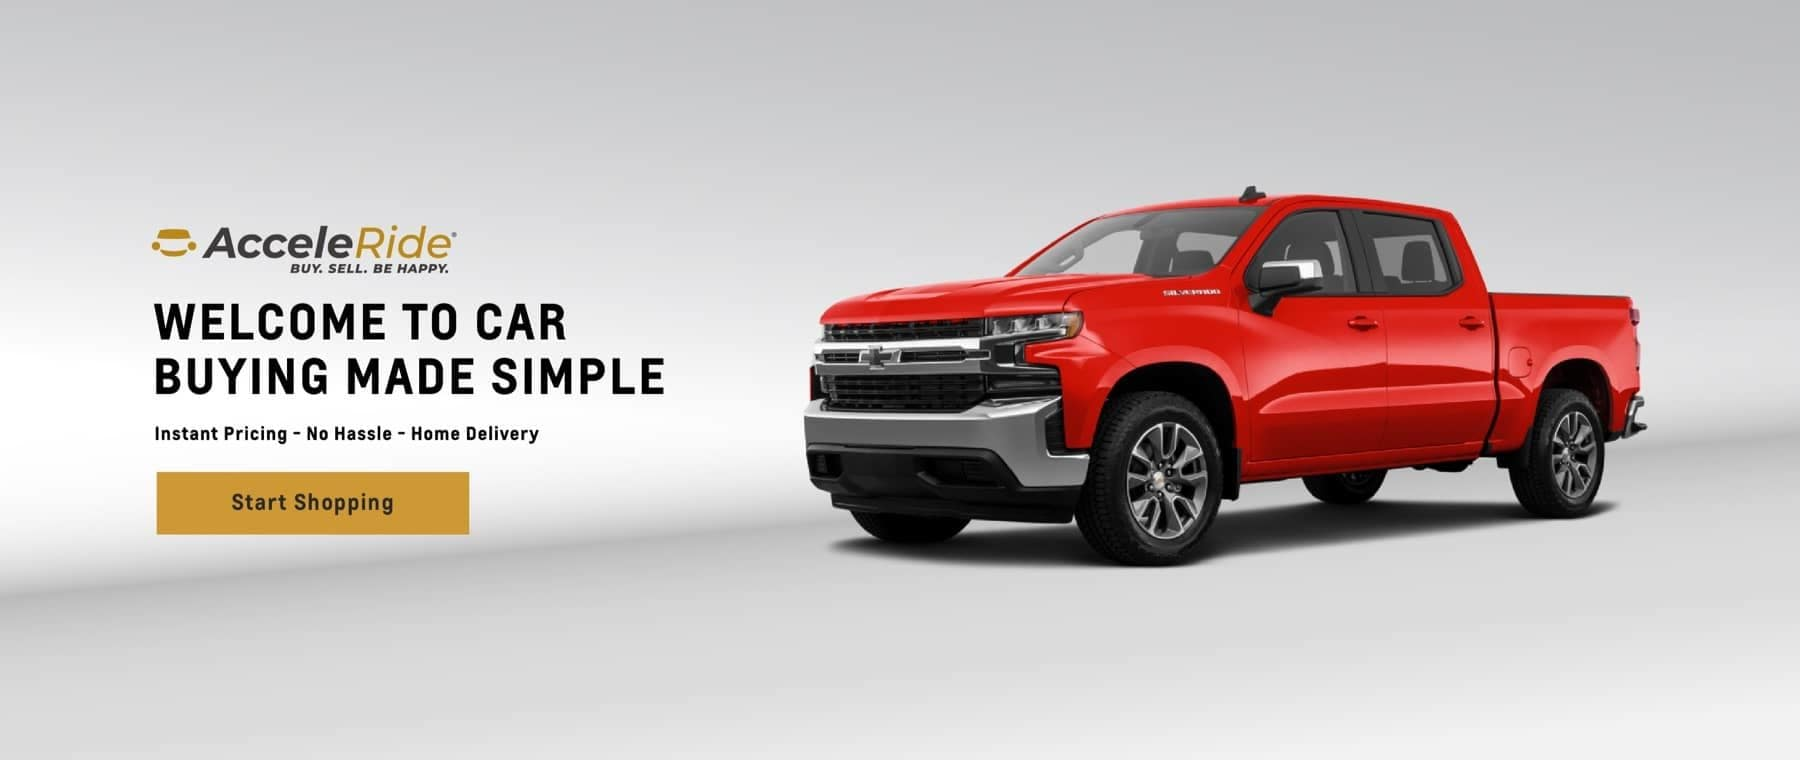 Welcome to Car Buying Made Simple - Start Shopping